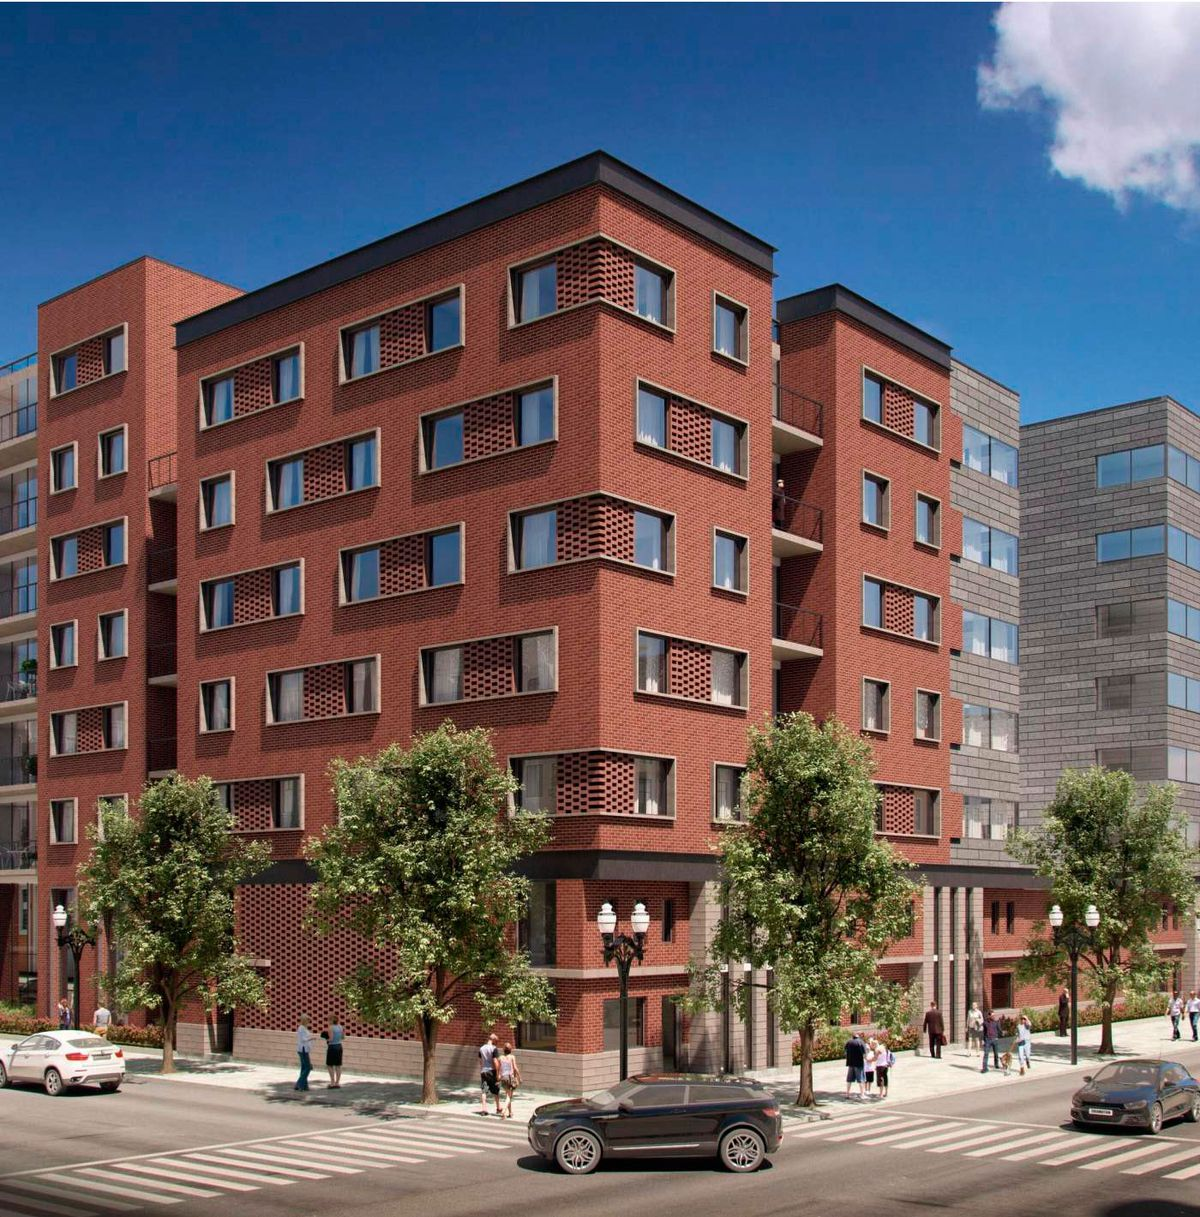 More Apartments Under Construction In Warner Center: Construction: Two New Apartment Projects Headed To Old